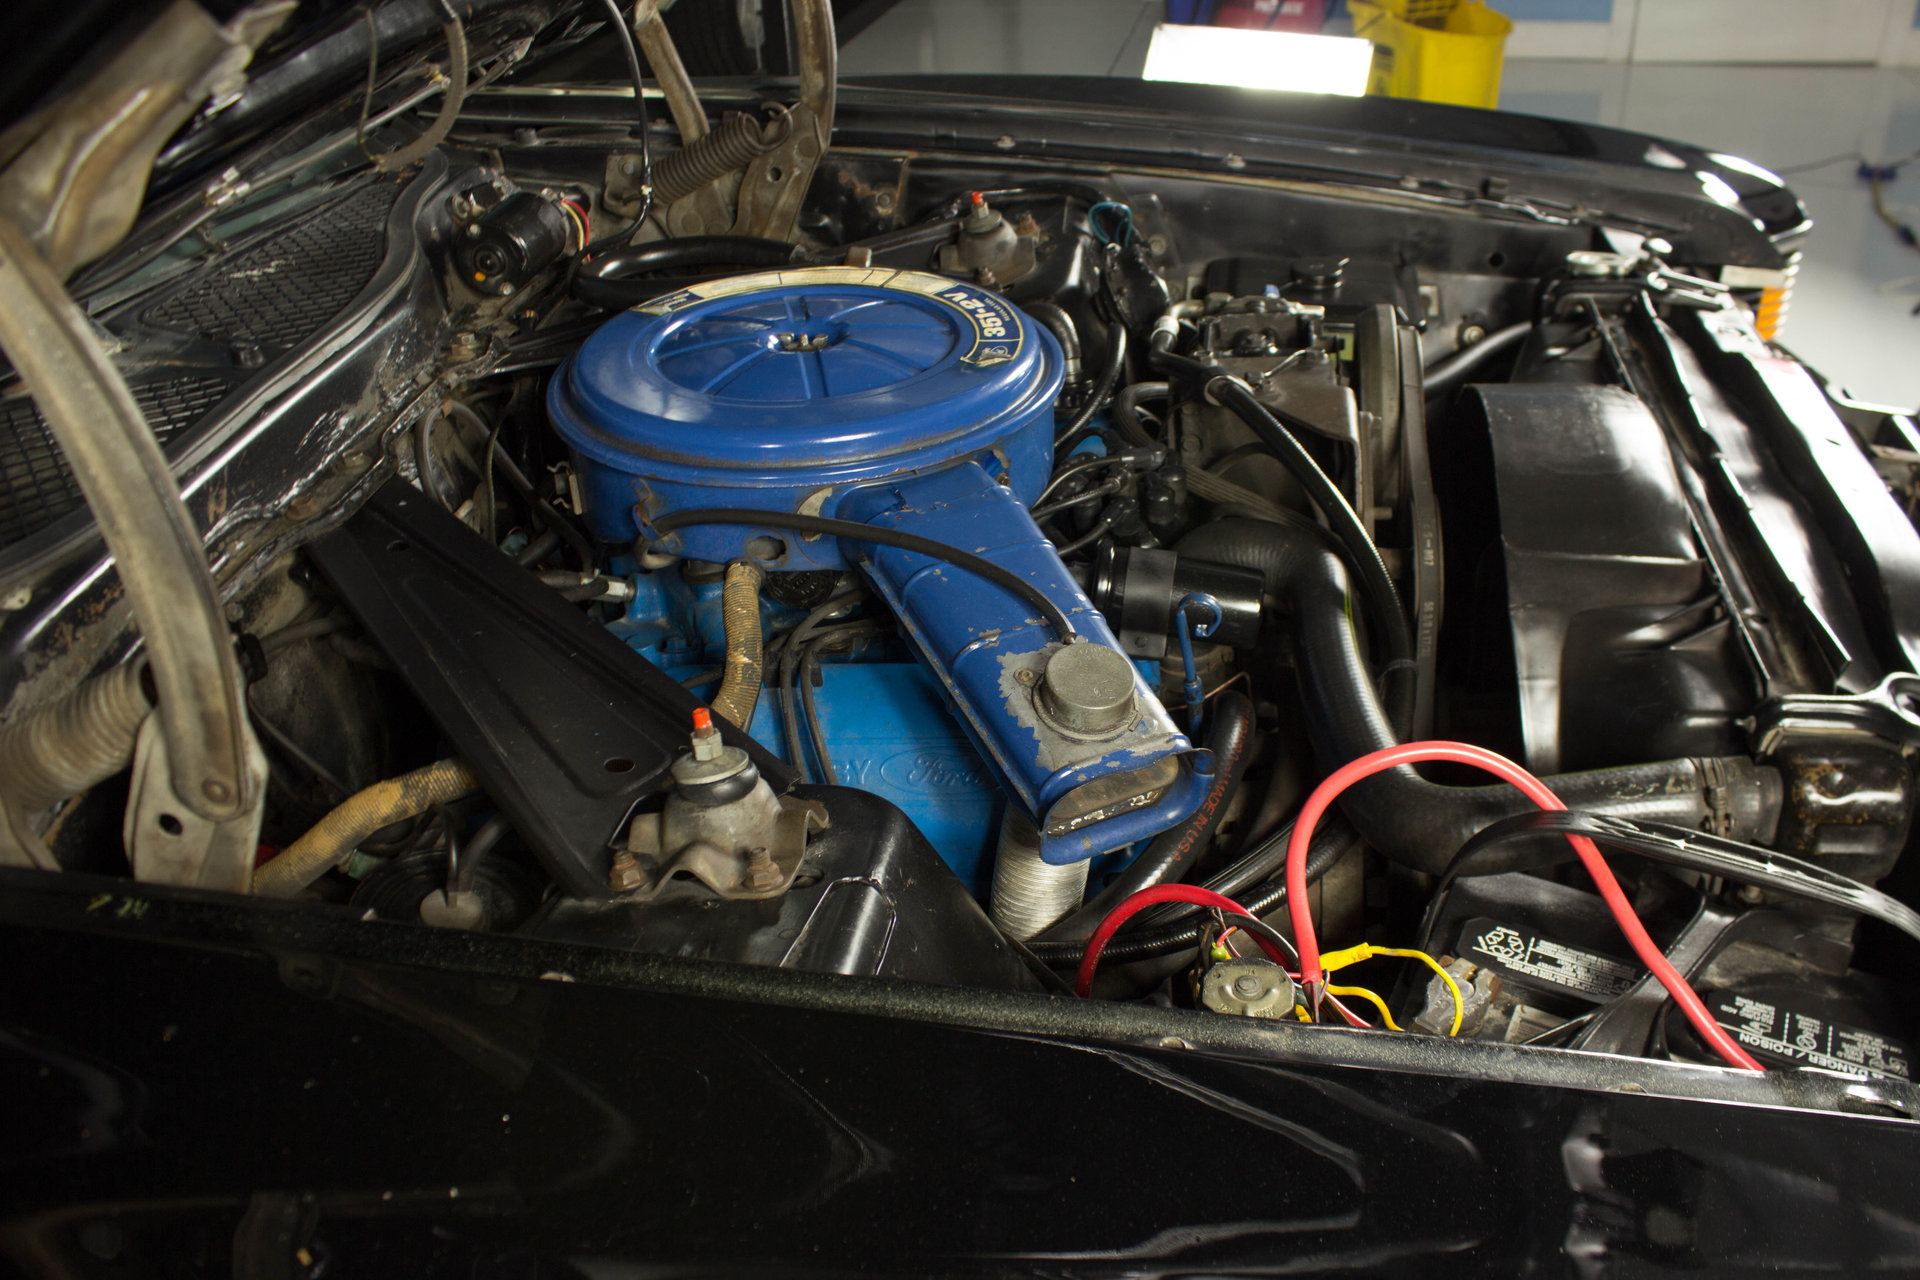 1972 Mercury Cougar Classic Cars Amp Used Cars For Sale In